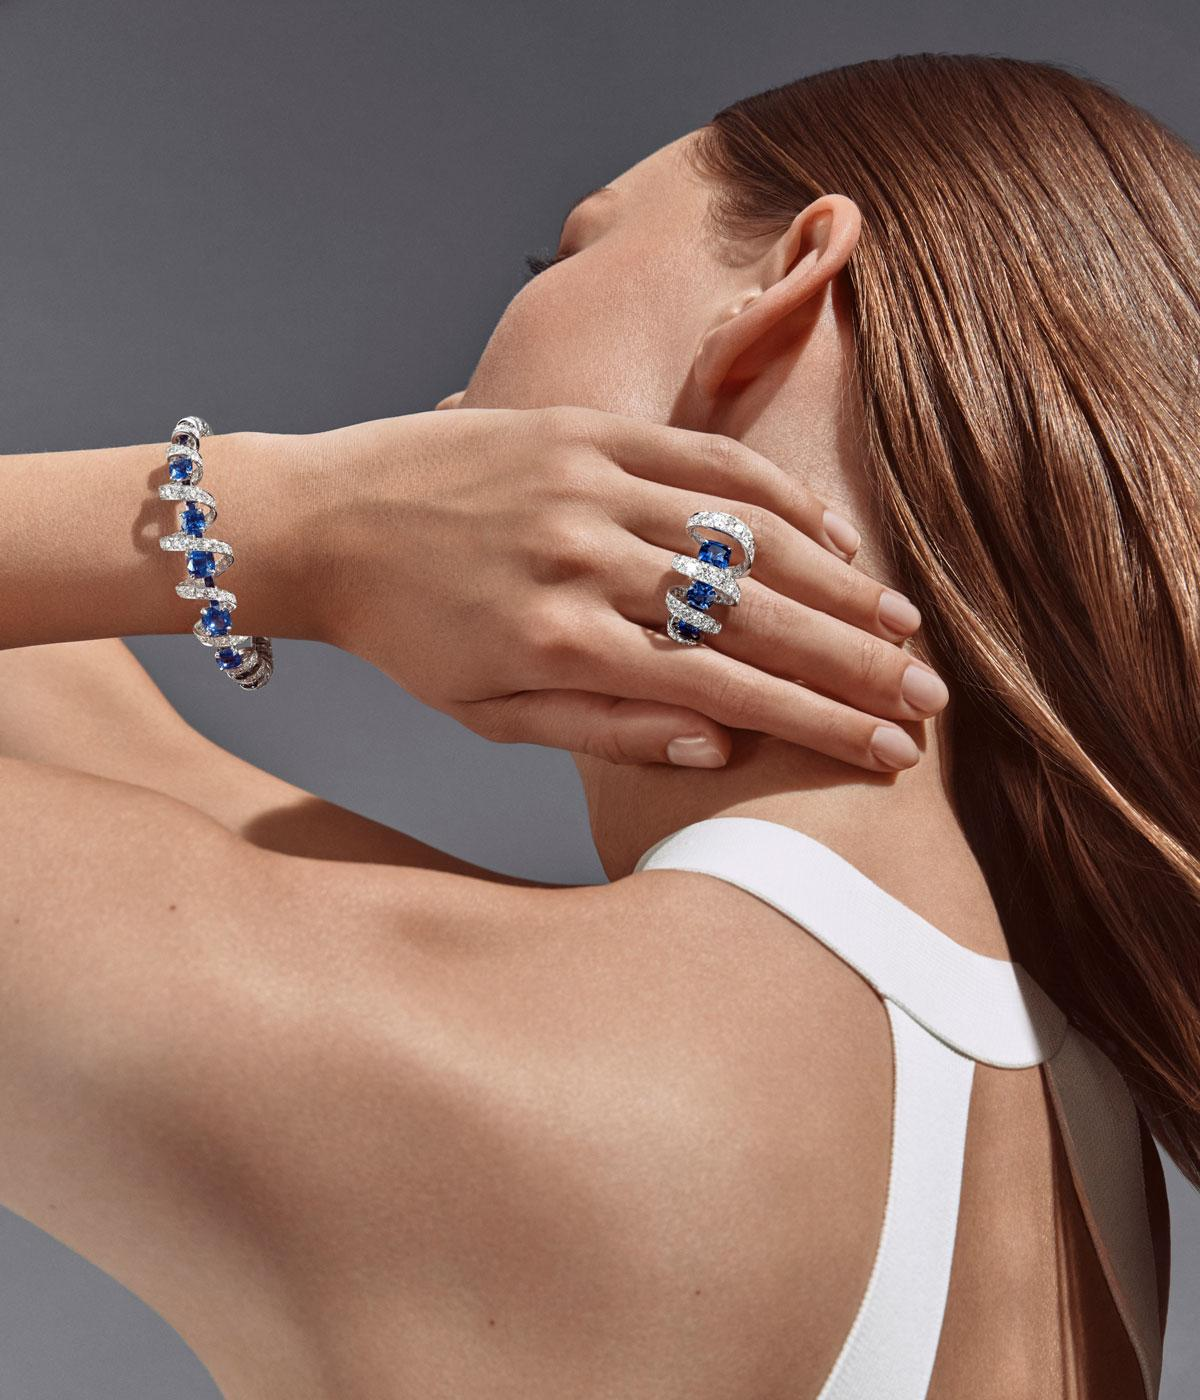 Woman wearing a blue and diamond wirl ring and bracelet